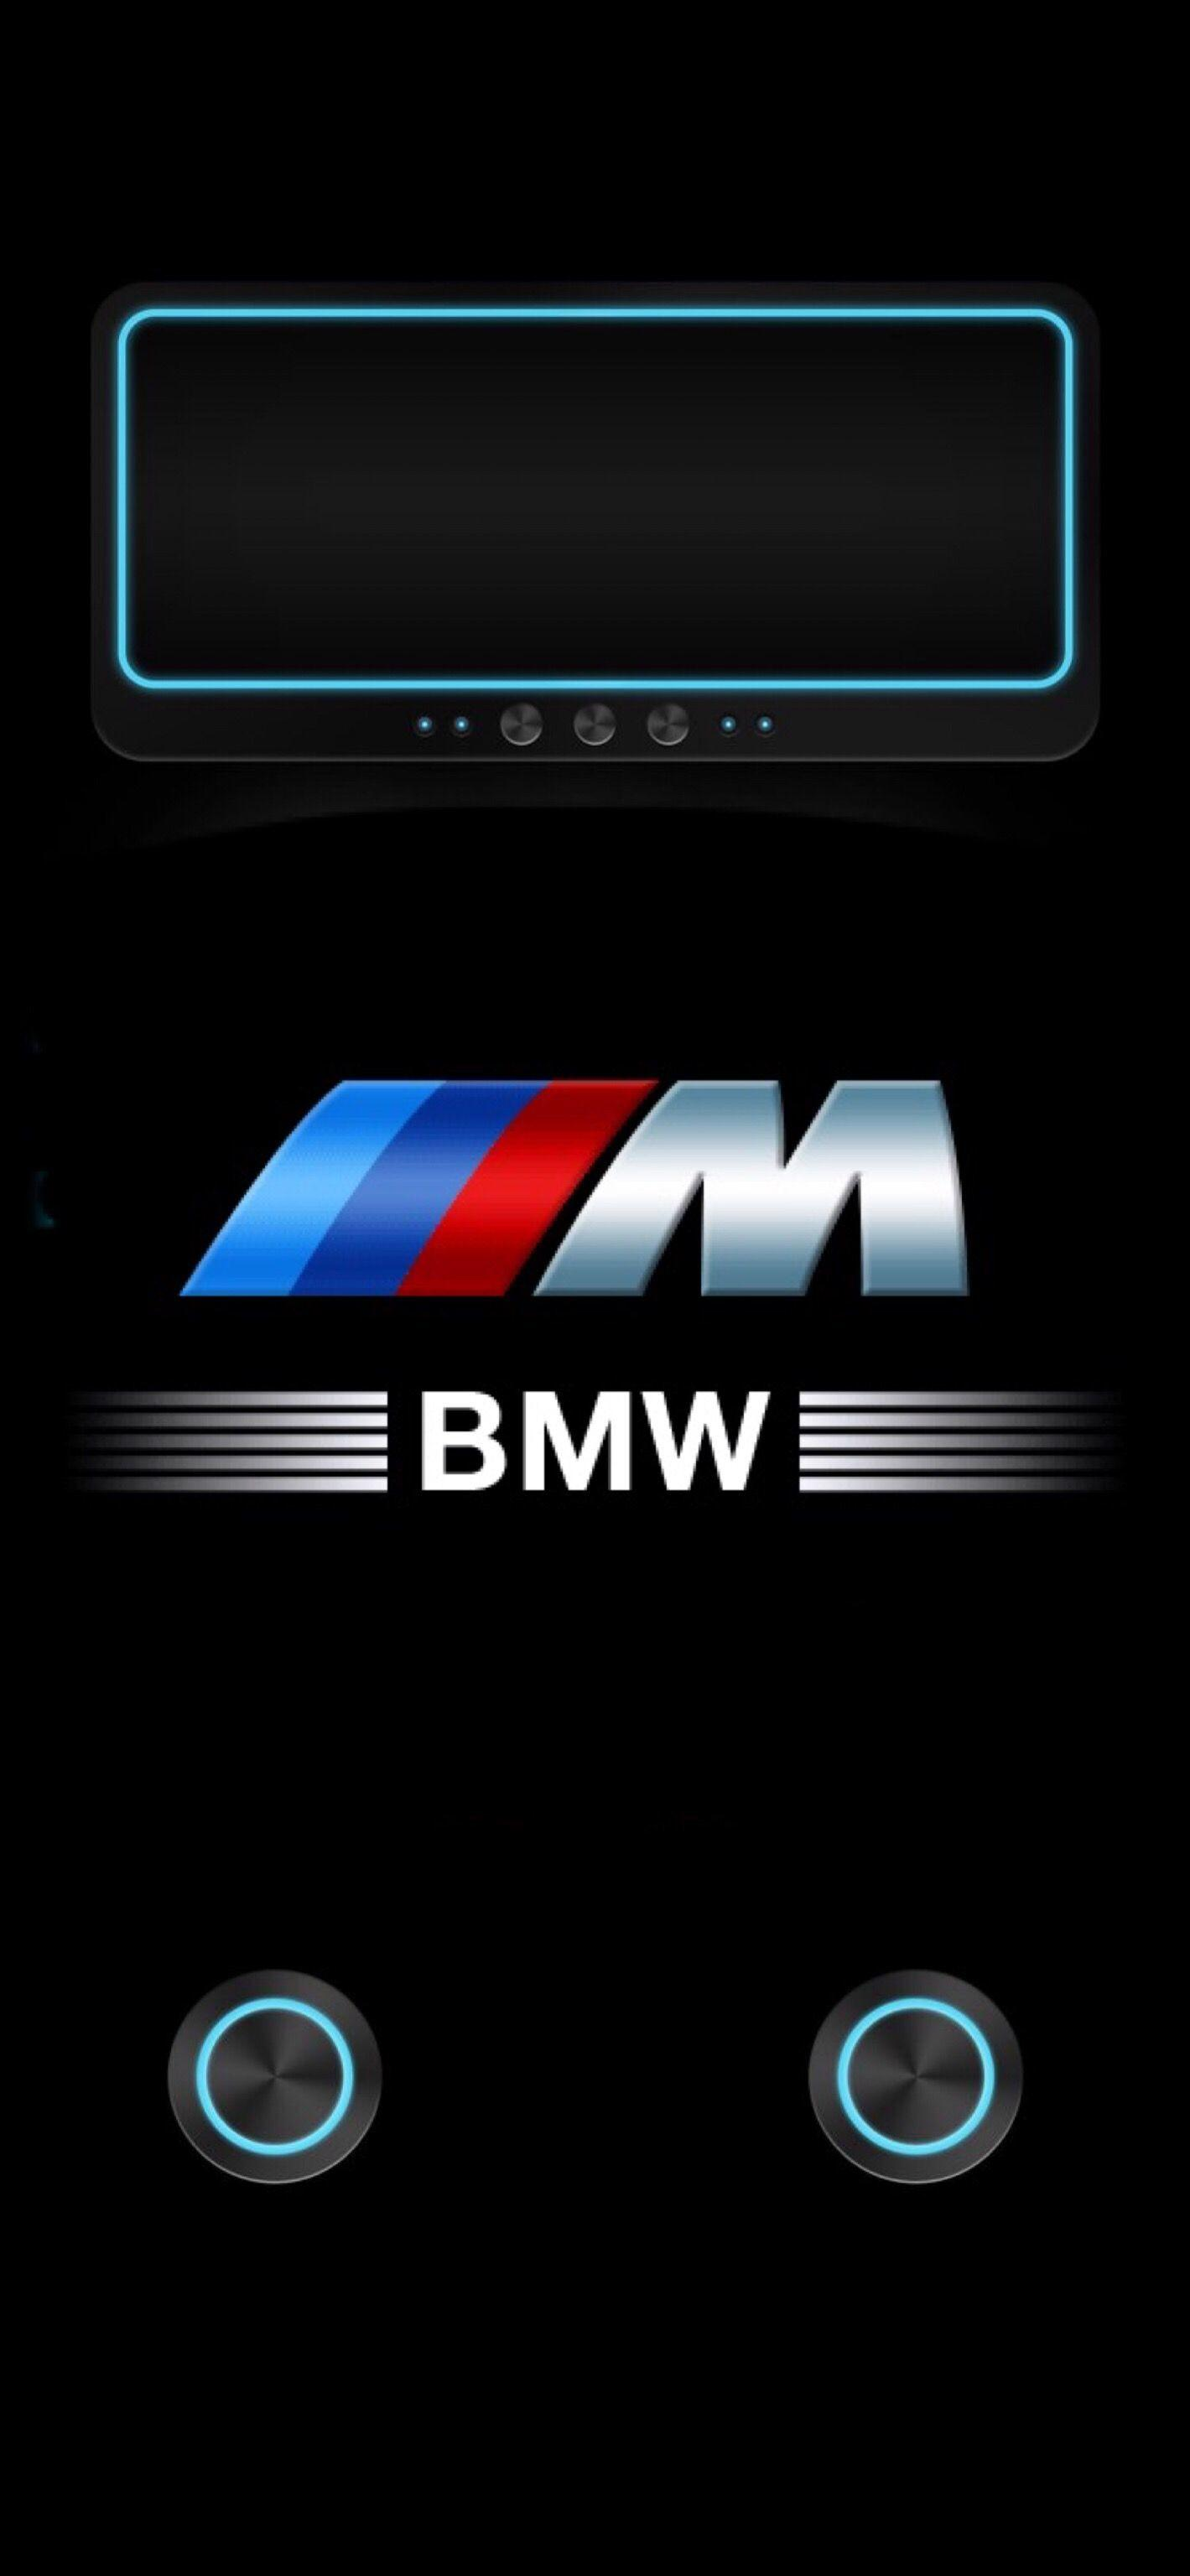 Bmw Logo Iphone Wallpapers Top Free Bmw Logo Iphone Backgrounds Wallpaperaccess